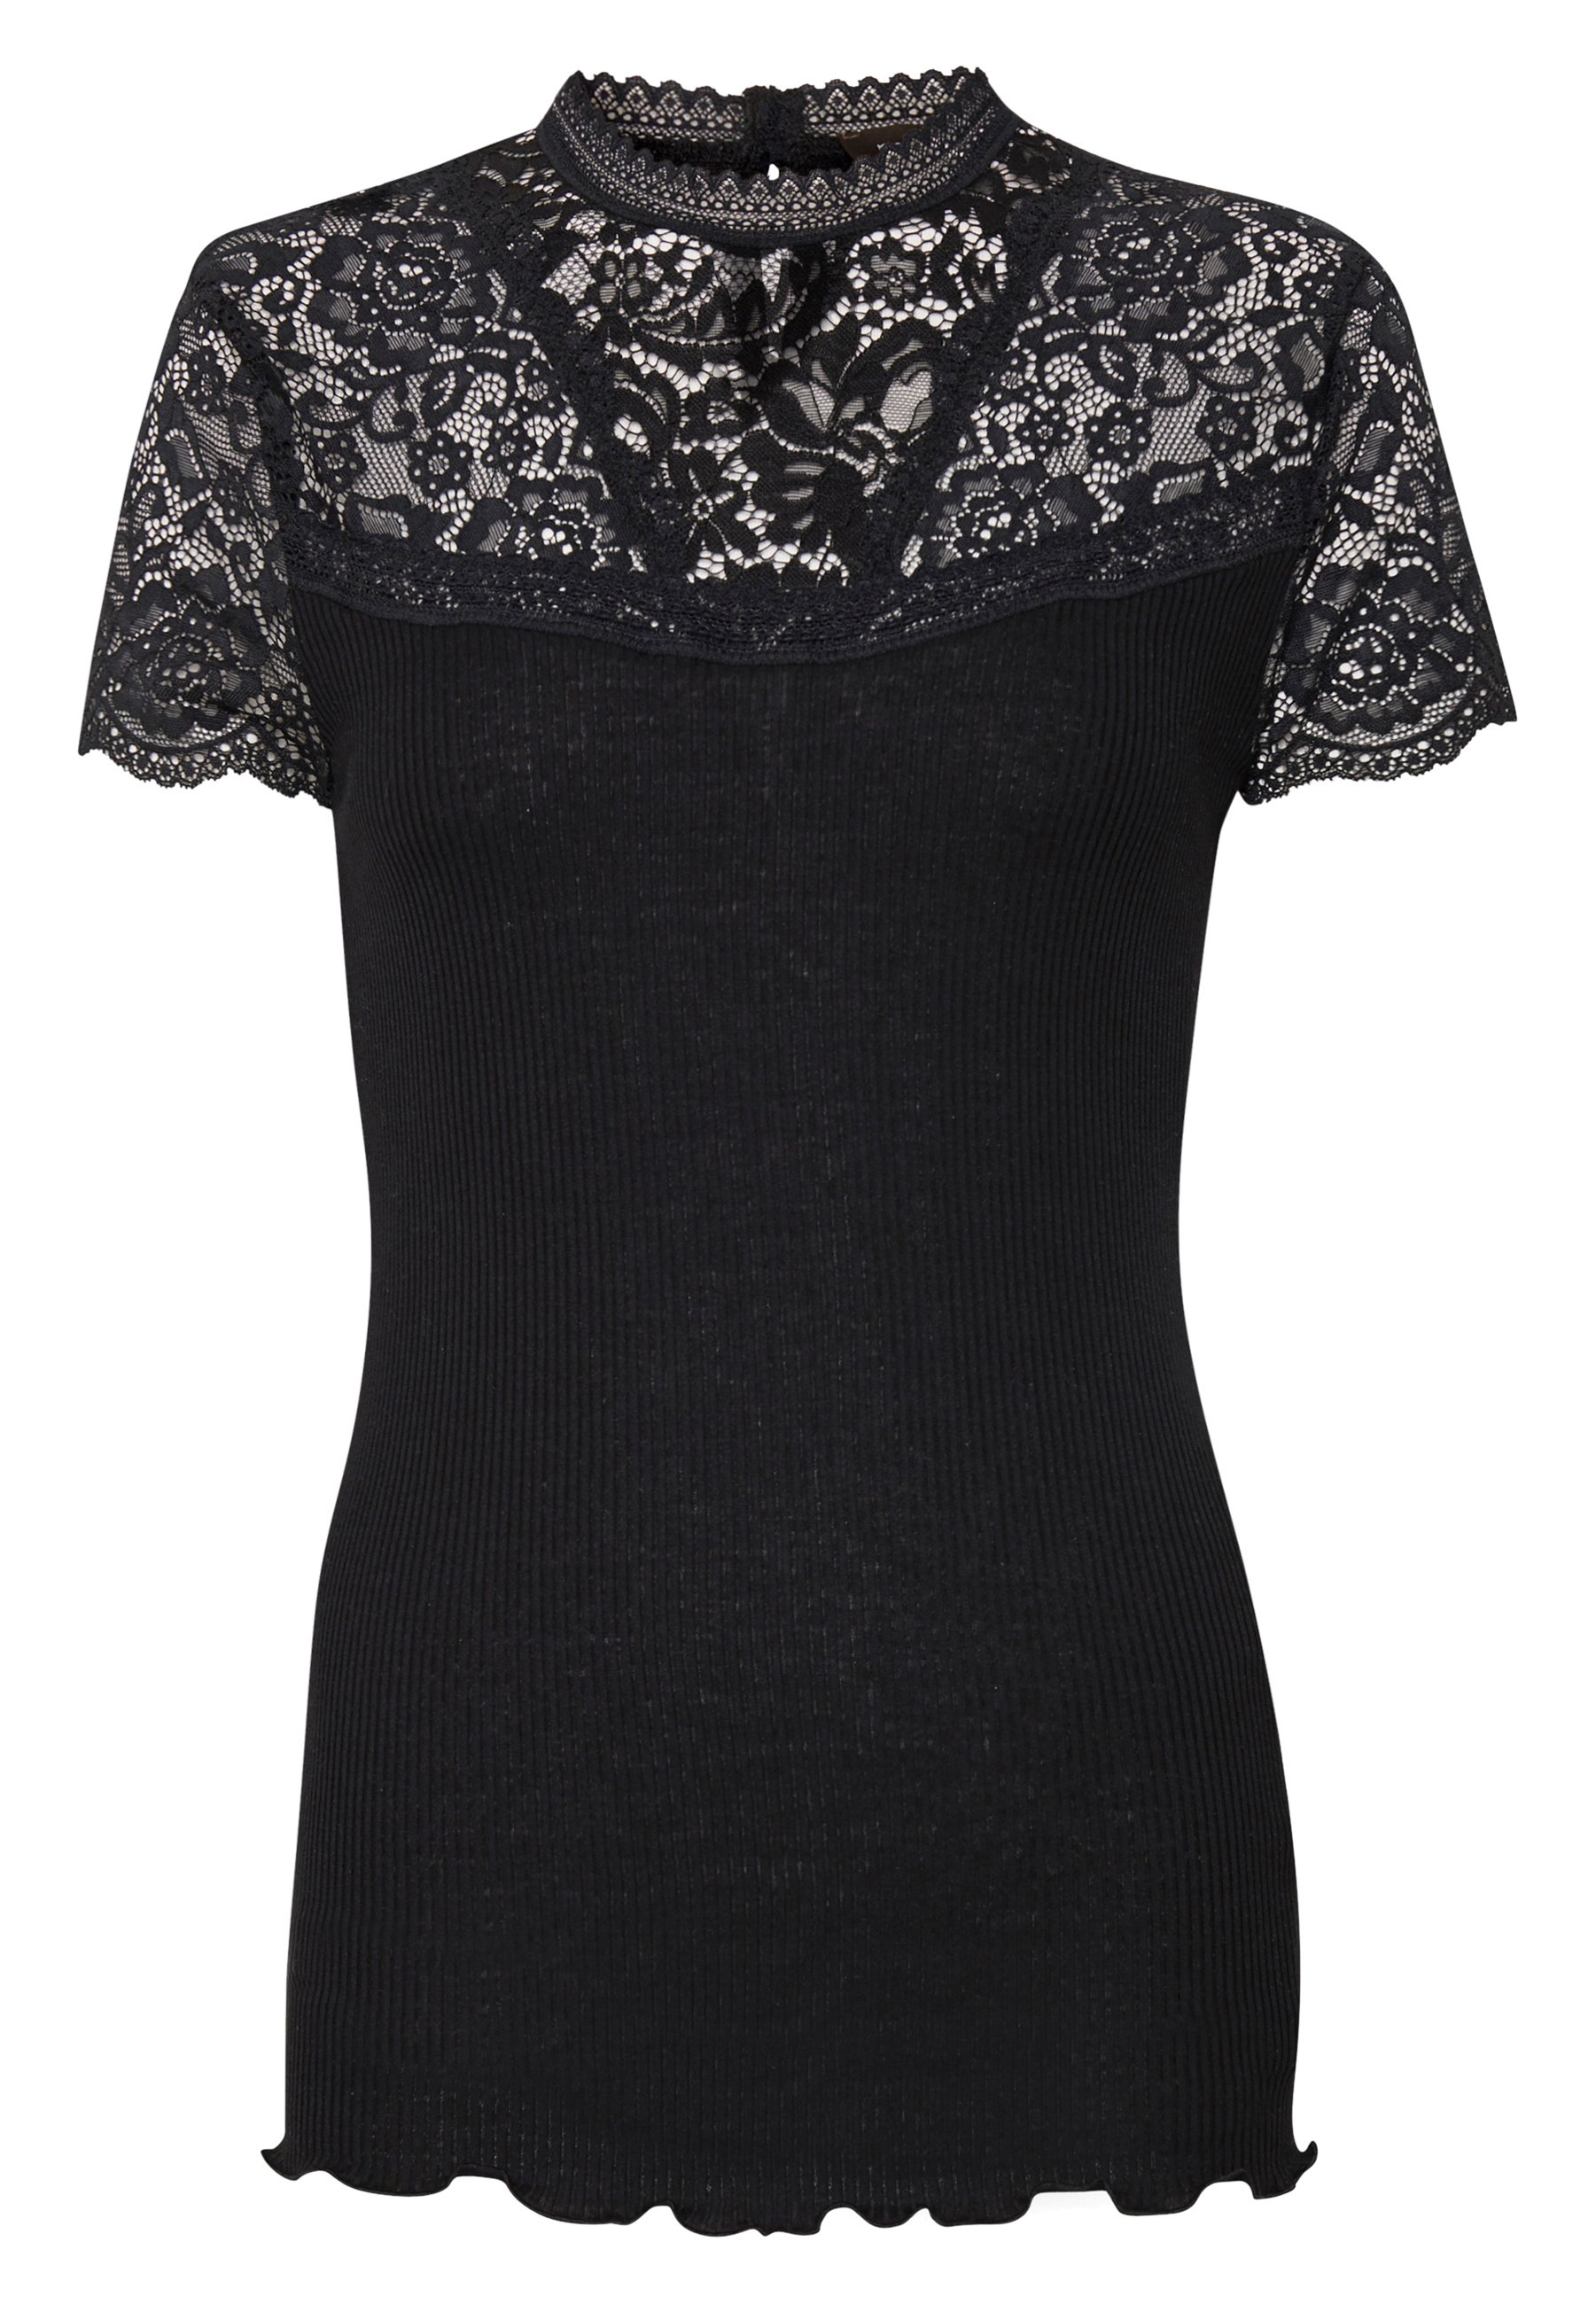 Rosemunde Silk-mix T-shirt Turtleneck Regular W/lace - Med Print Black